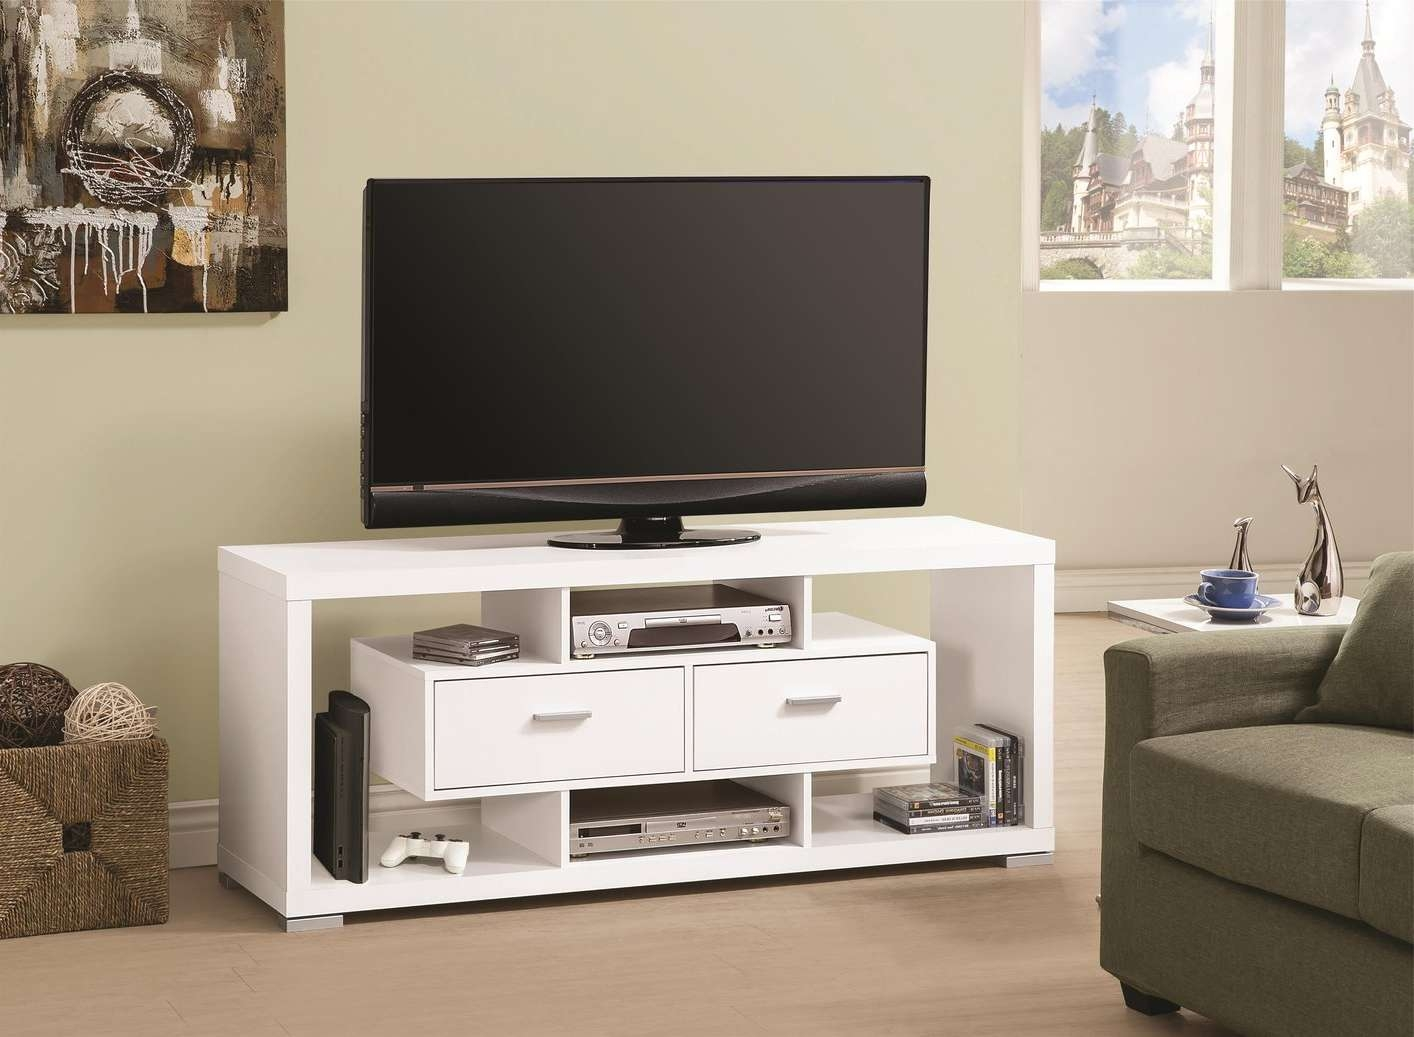 White Wood Tv Stand – Steal A Sofa Furniture Outlet Los Angeles Ca In White And Wood Tv Stands (View 9 of 15)